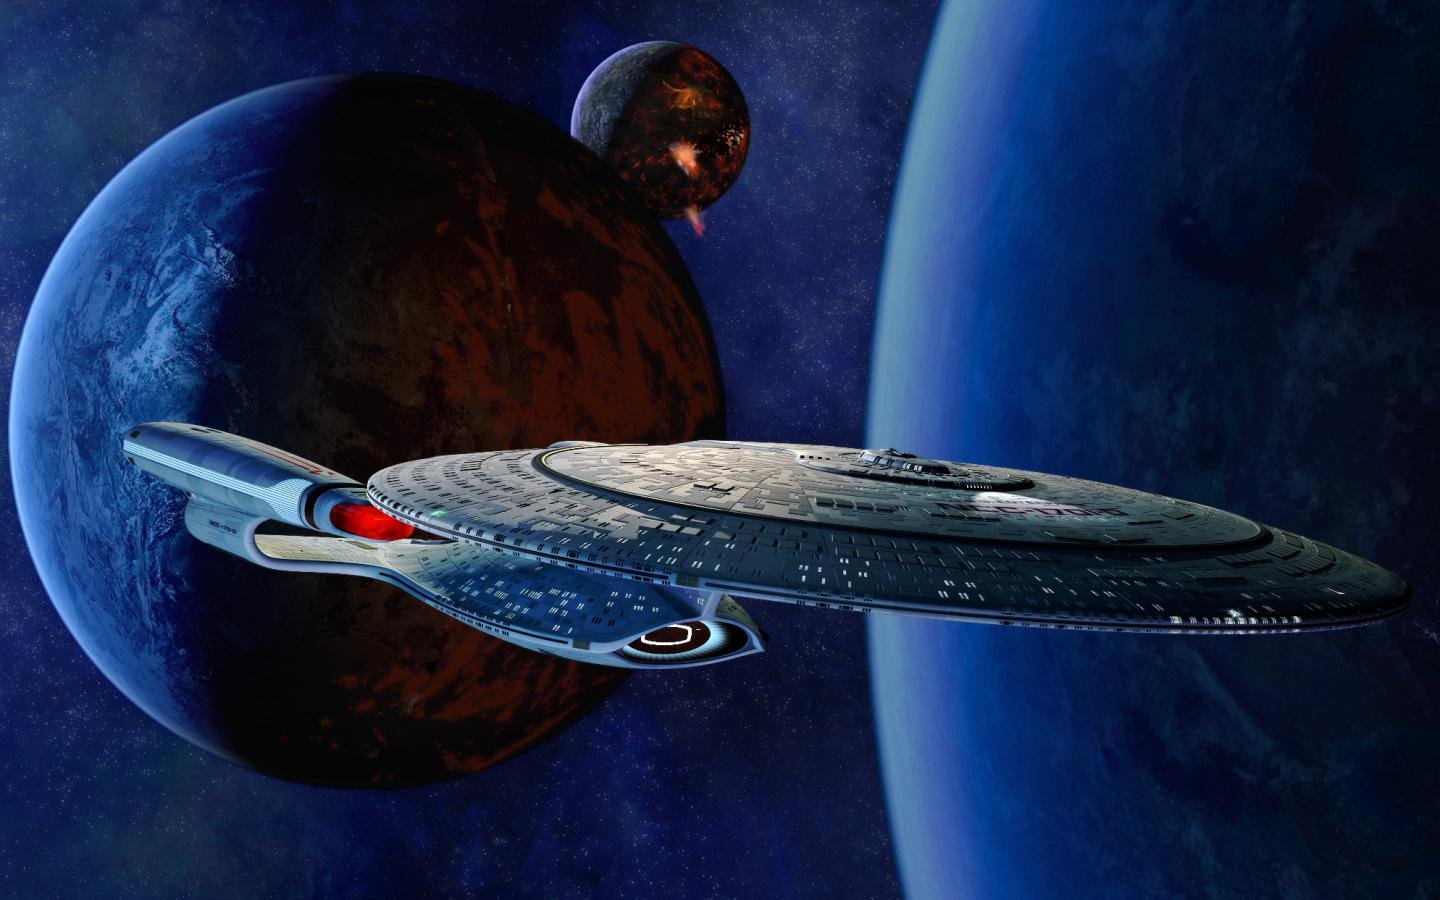 Download hd 1440x900 Star Trek: The Next Generation desktop wallpaper ID:446193 for free